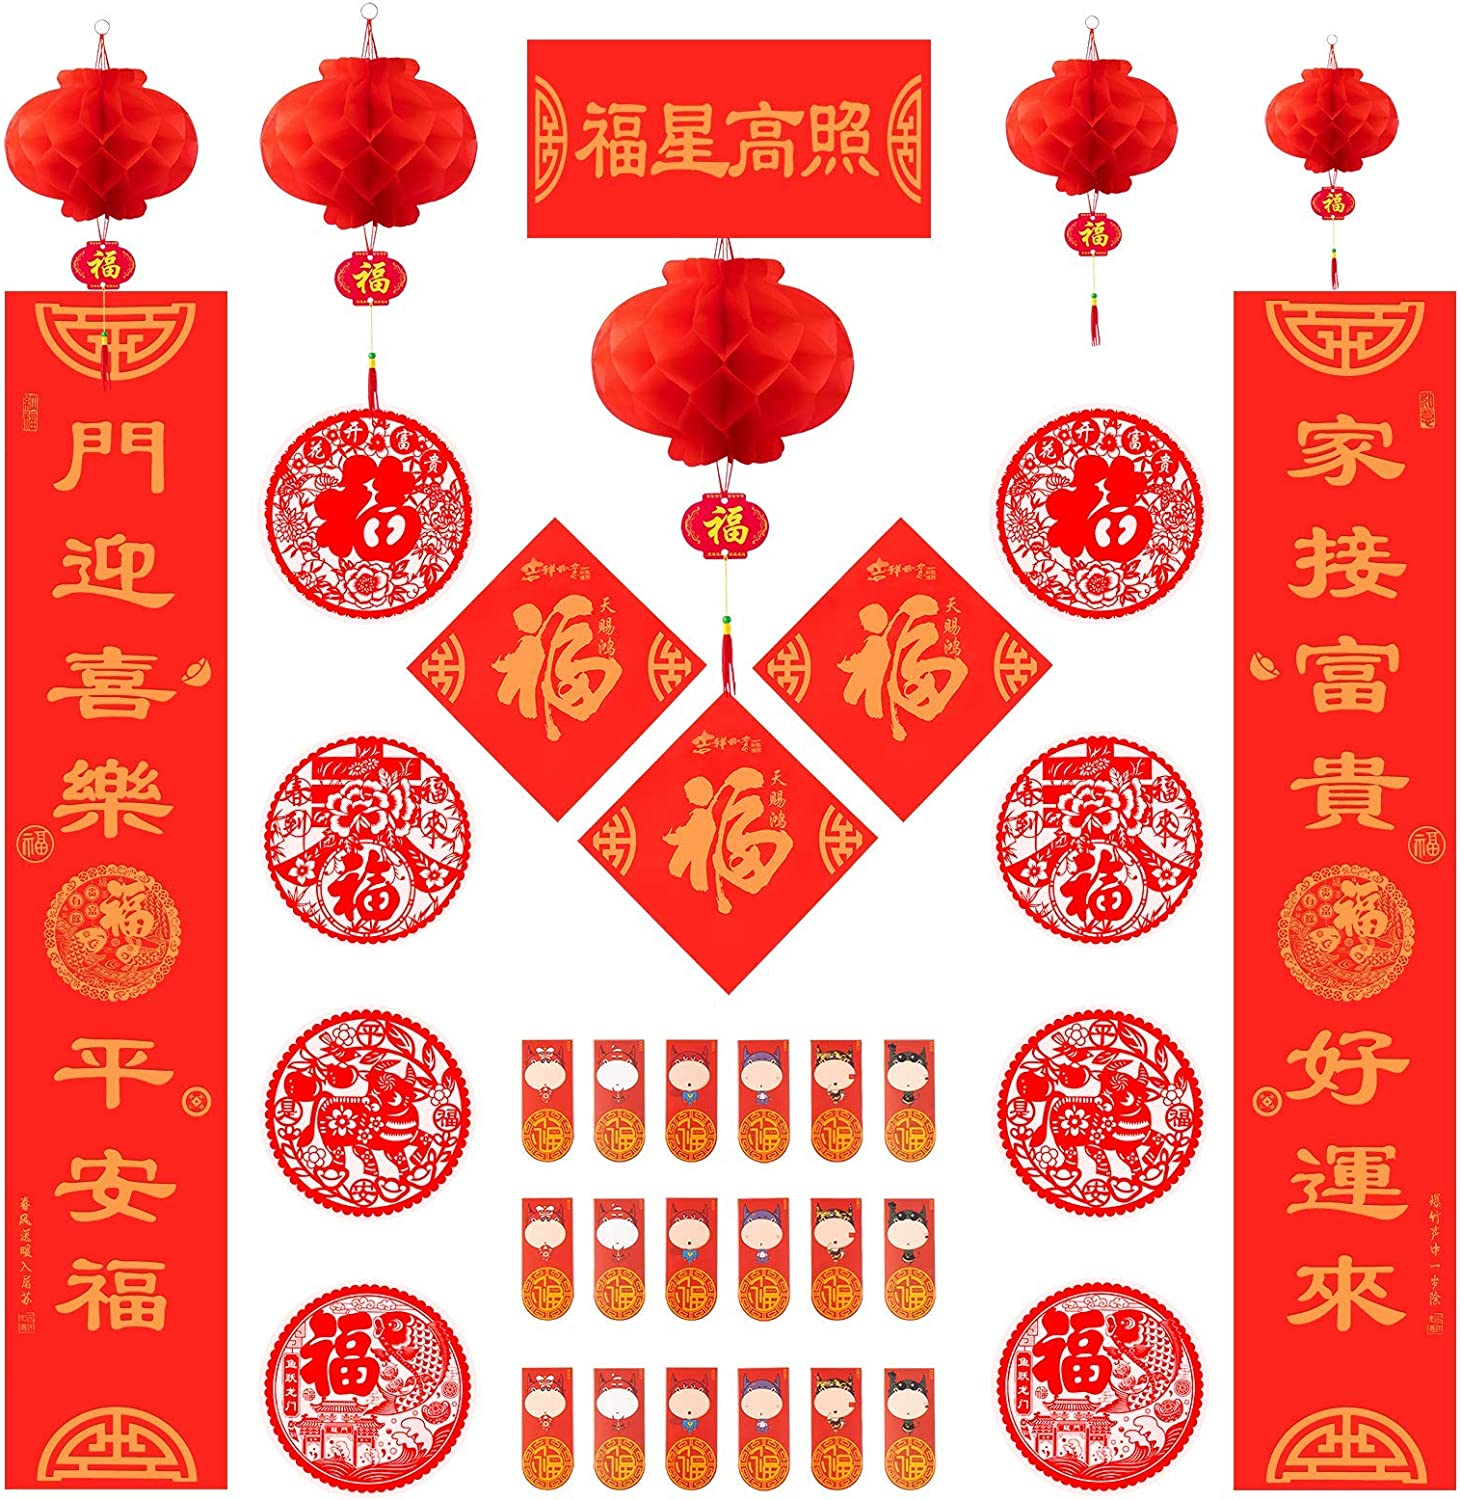 Ponwec 37 Pieces Chinese New Year Decoration Chinese Couplets Red Lantern Red Envelopes Red Felt Lucky Character Chinese Fu Character Paper Window for The 2021 Spring Festival Party Supplies